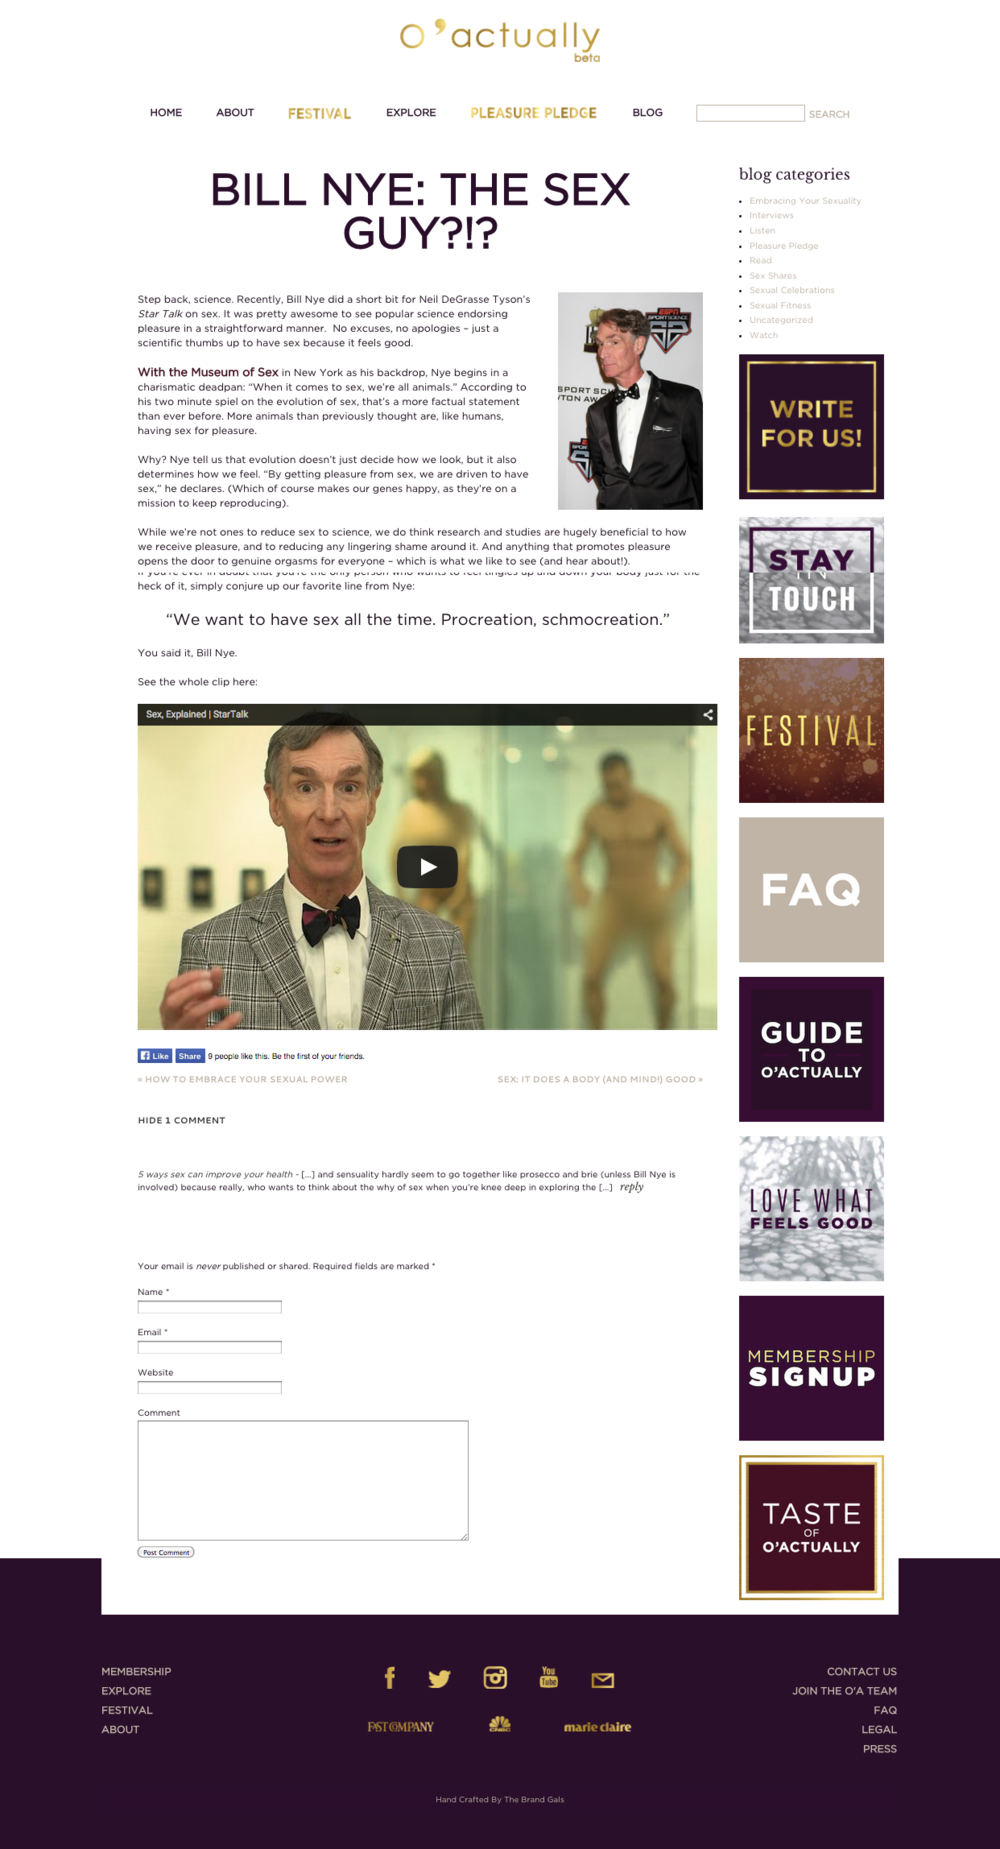 Blog - O'Actually - Curated Content (Bill Nye).png